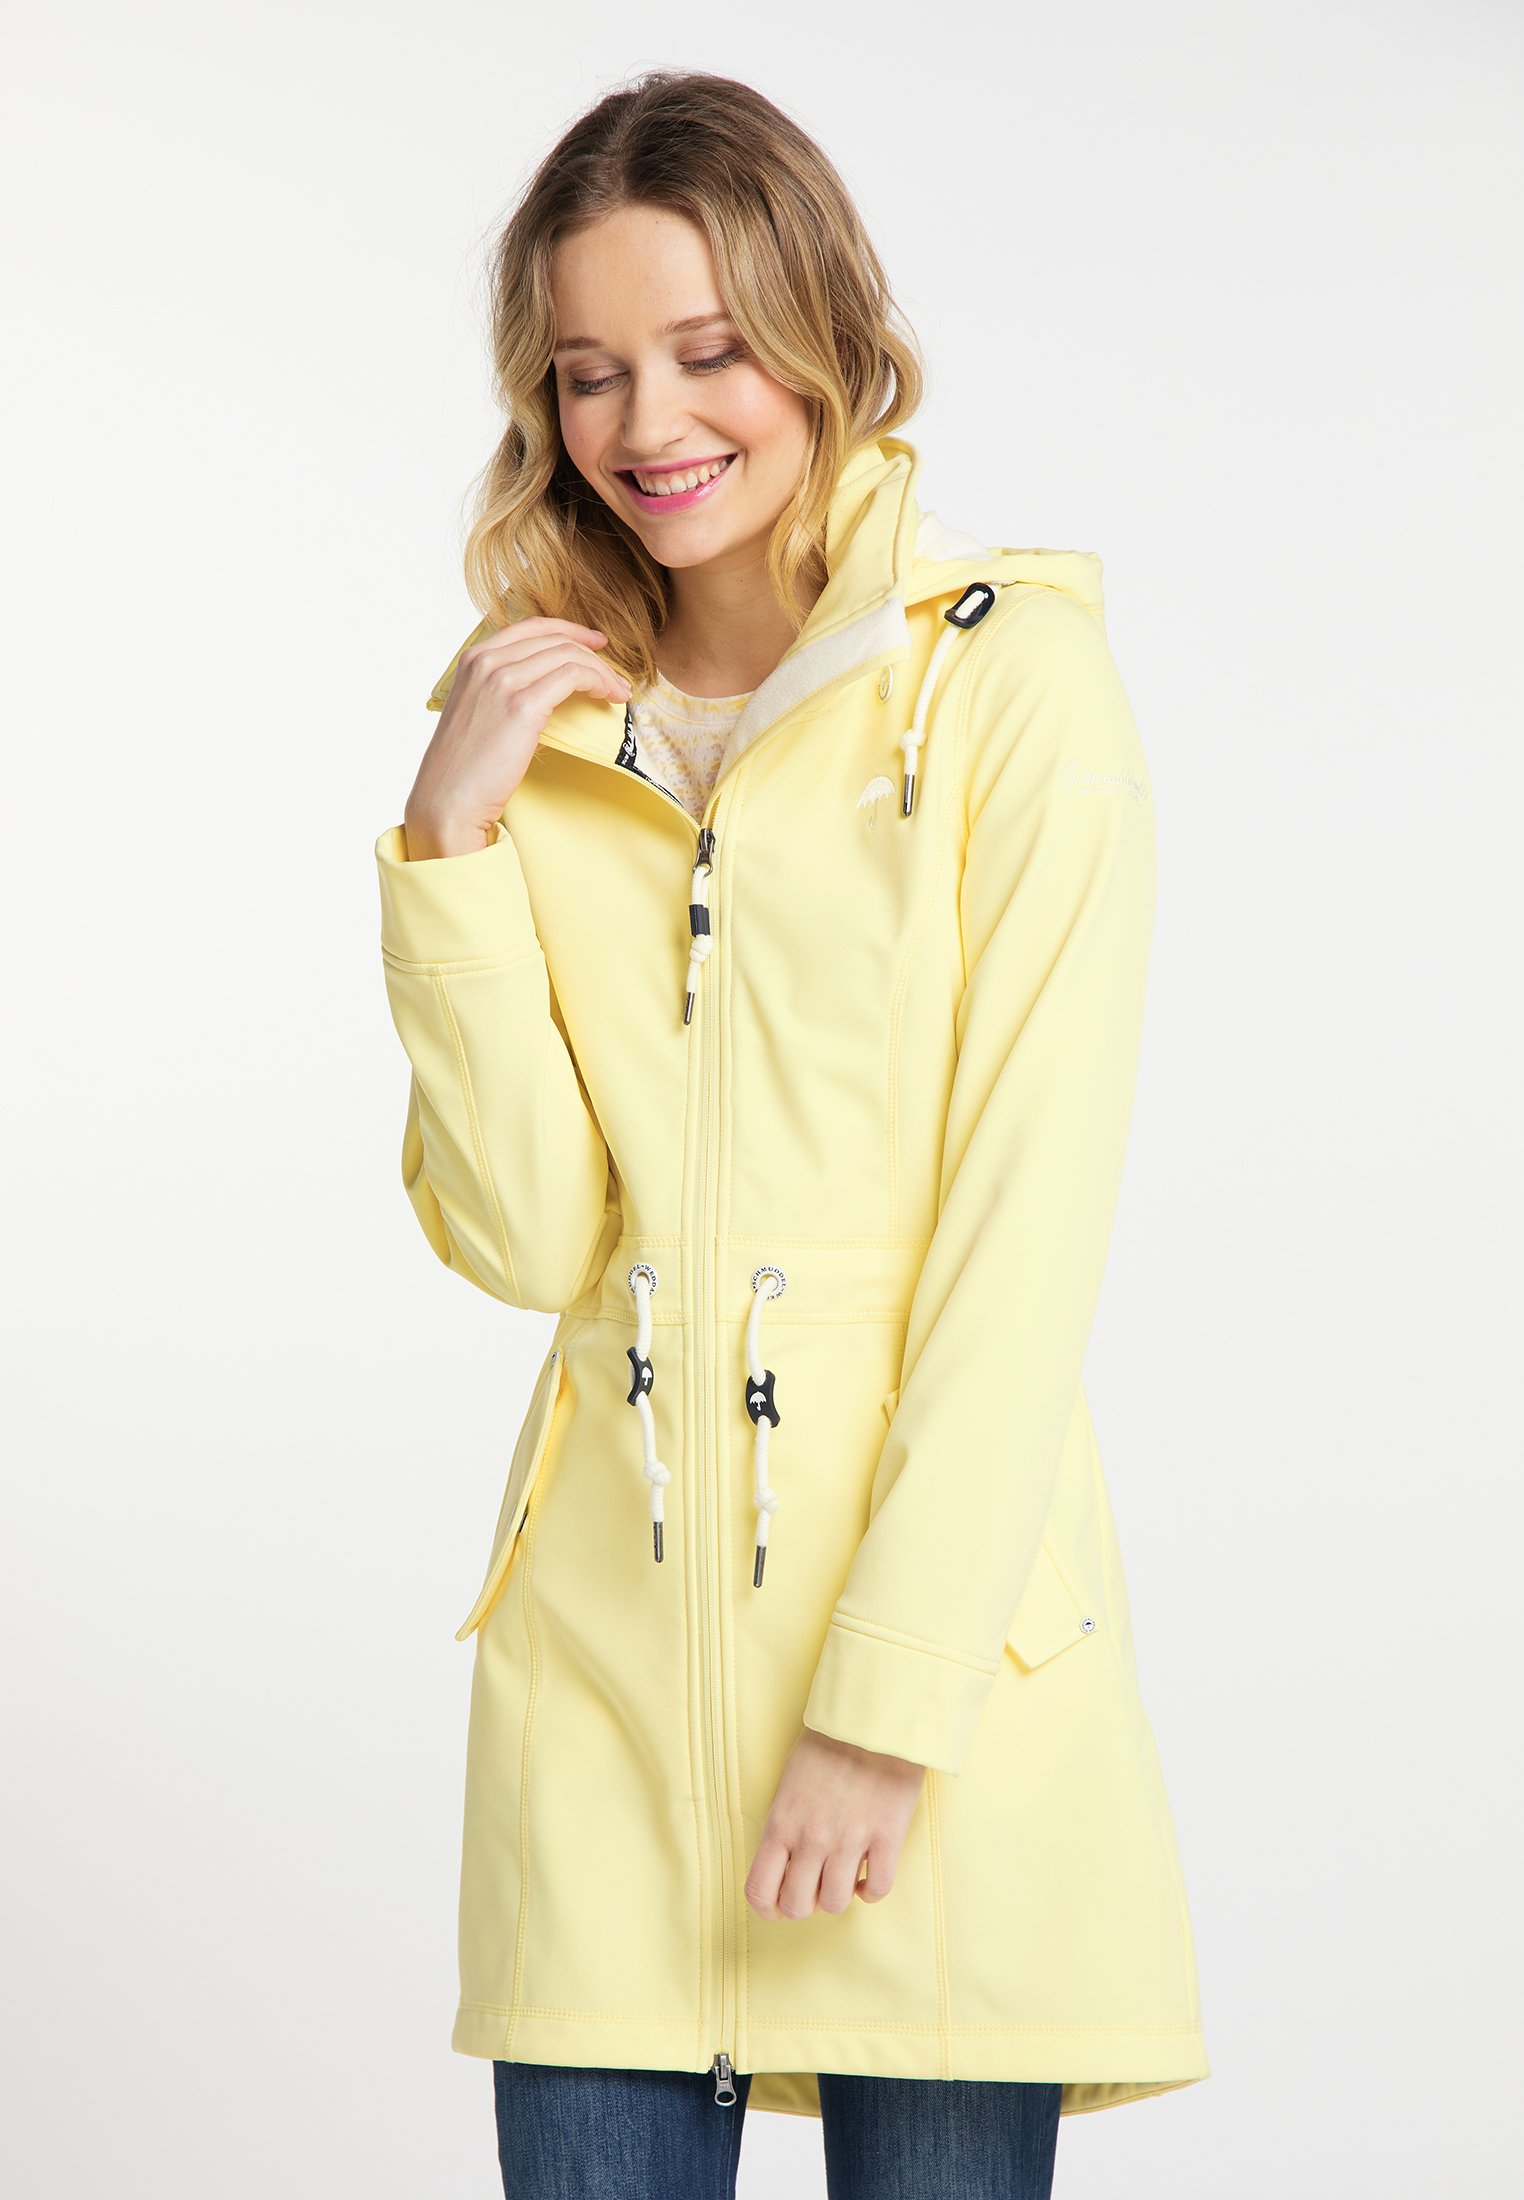 Schmuddelwedda Parka - light yellow | Damenbekleidung billig